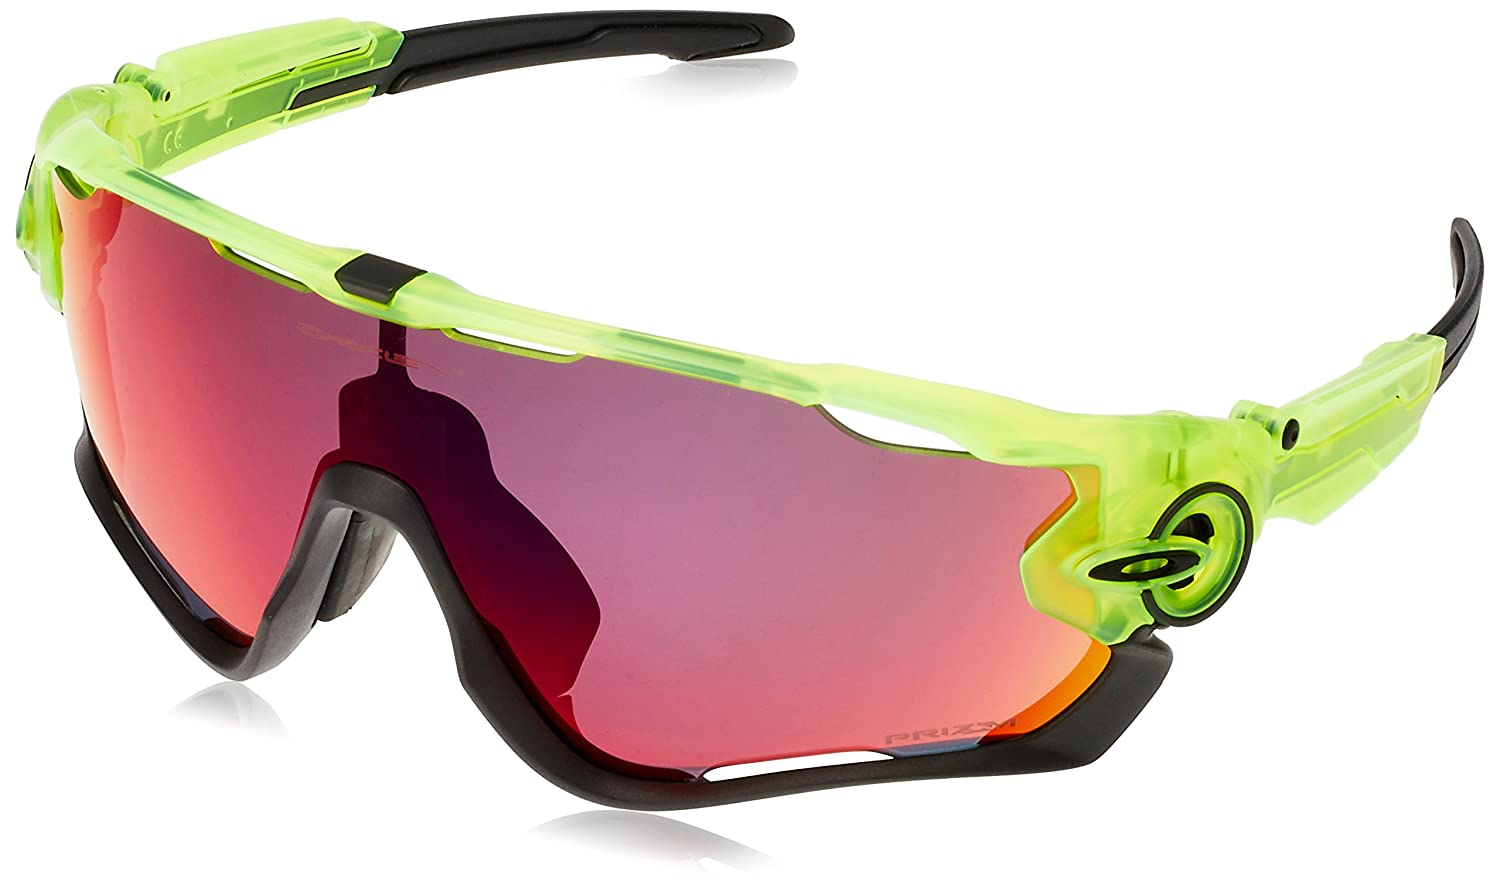 bef5587ab6 Oakley Mens Jawbreaker Asian Fit Sunglasses